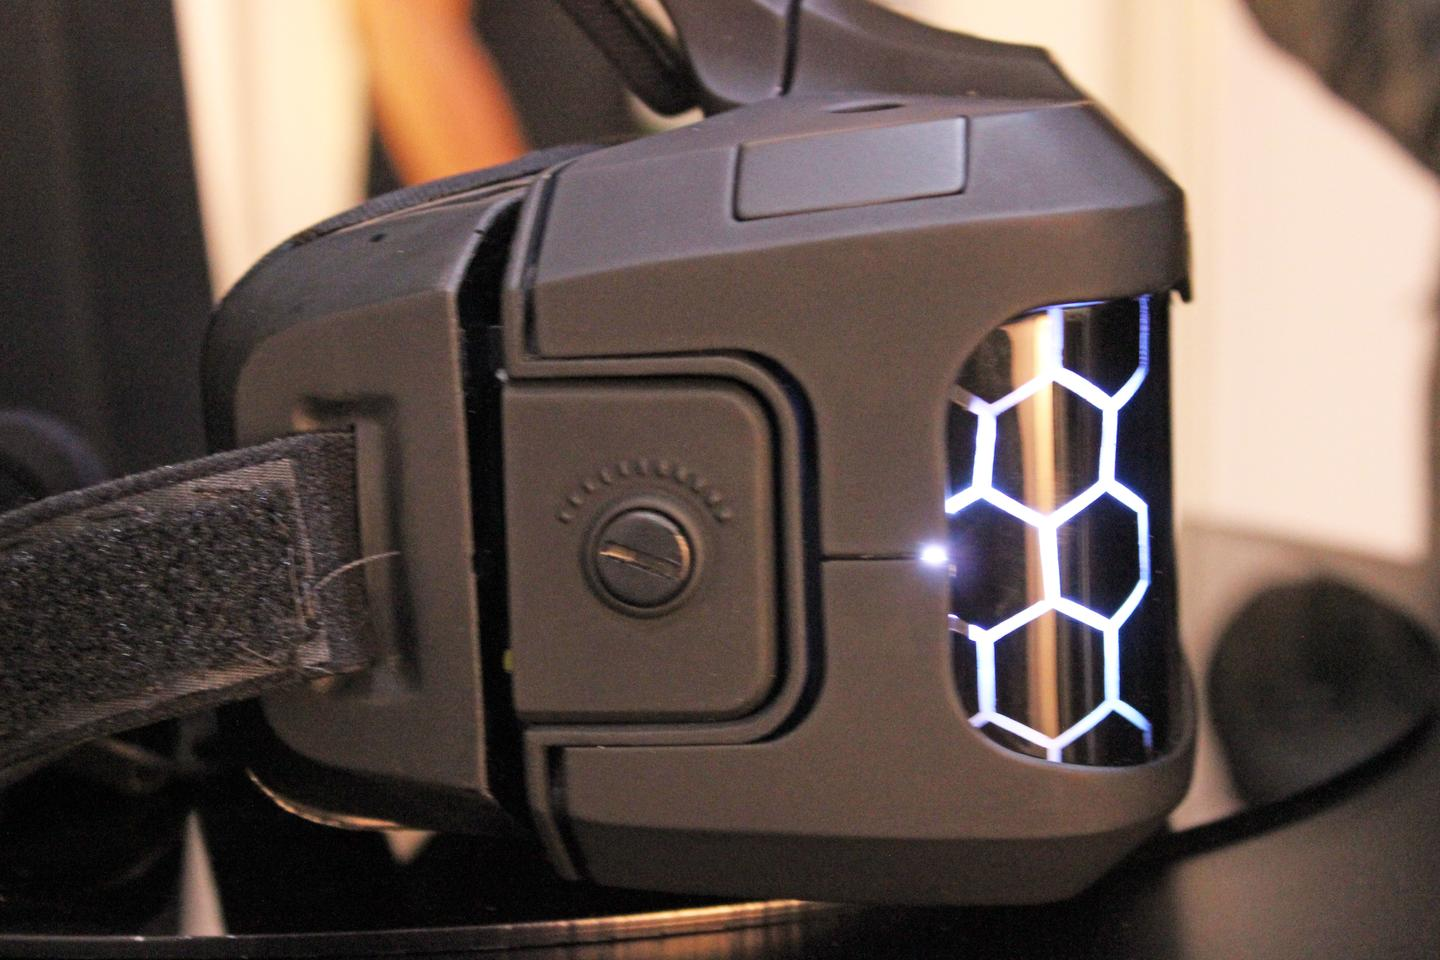 Side of the Sulon Cortex VR/AR headset (Photo: Will Shanklin/Gizmag.com)